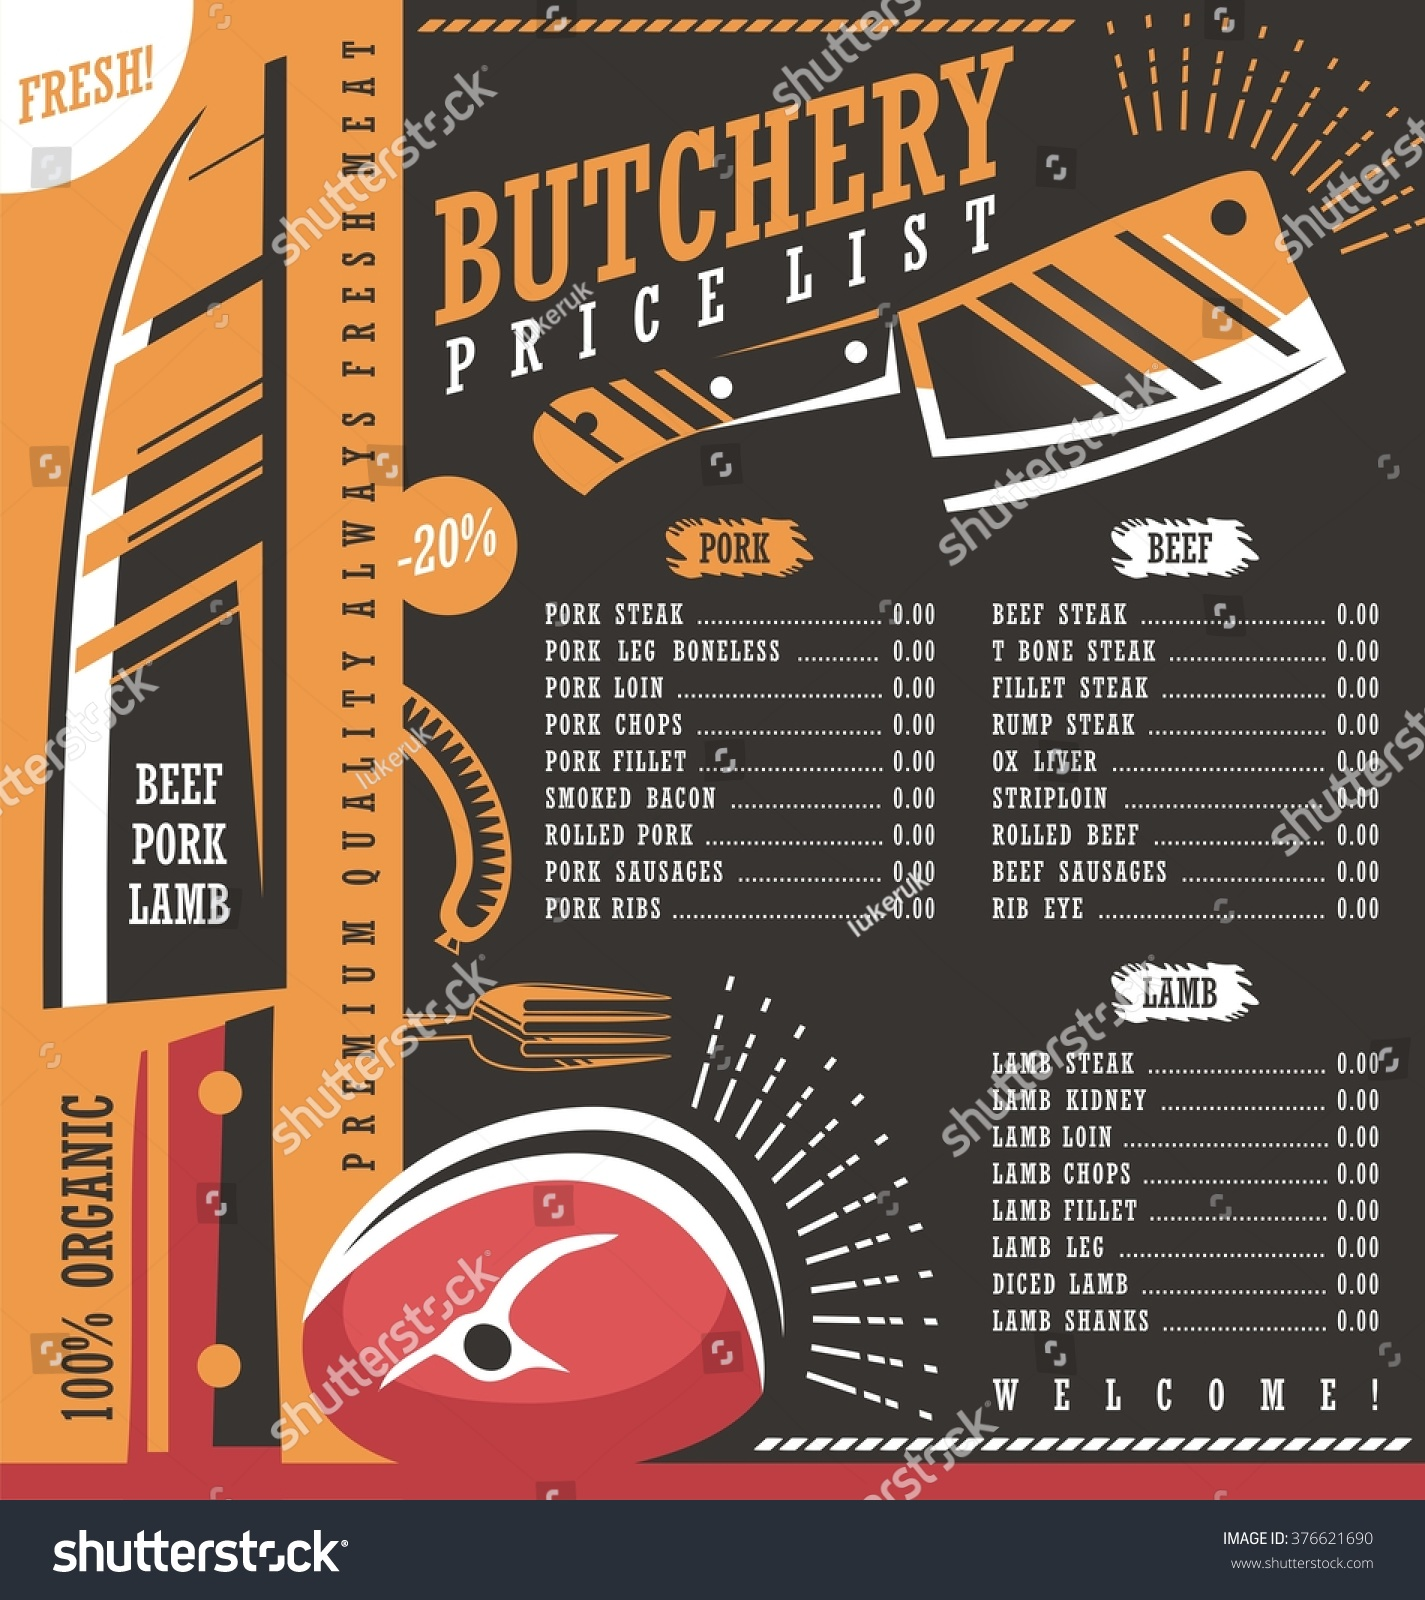 butcher shop price list vector design stock vector royalty free